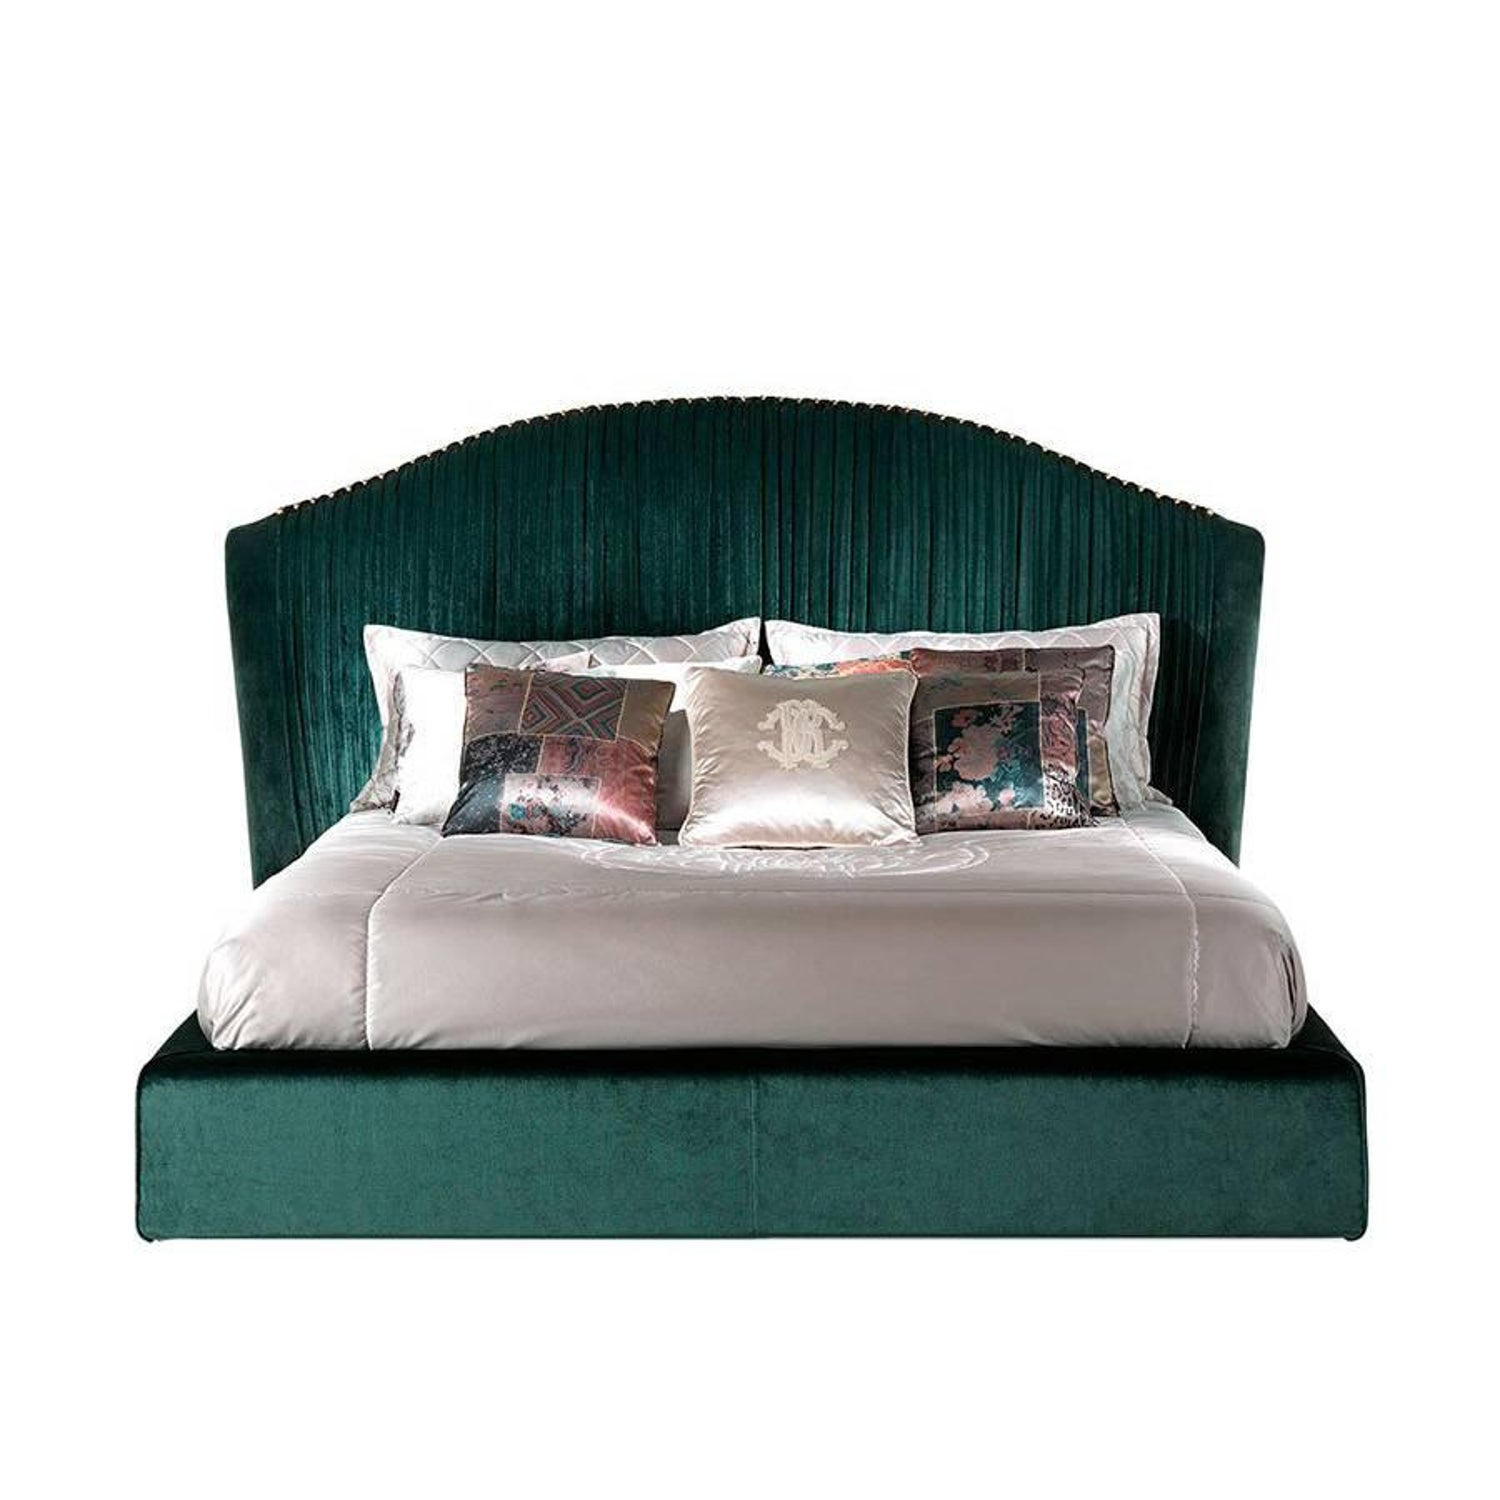 Roberto Cavalli Iconic Collection Smoking Bed In Sand For Sale